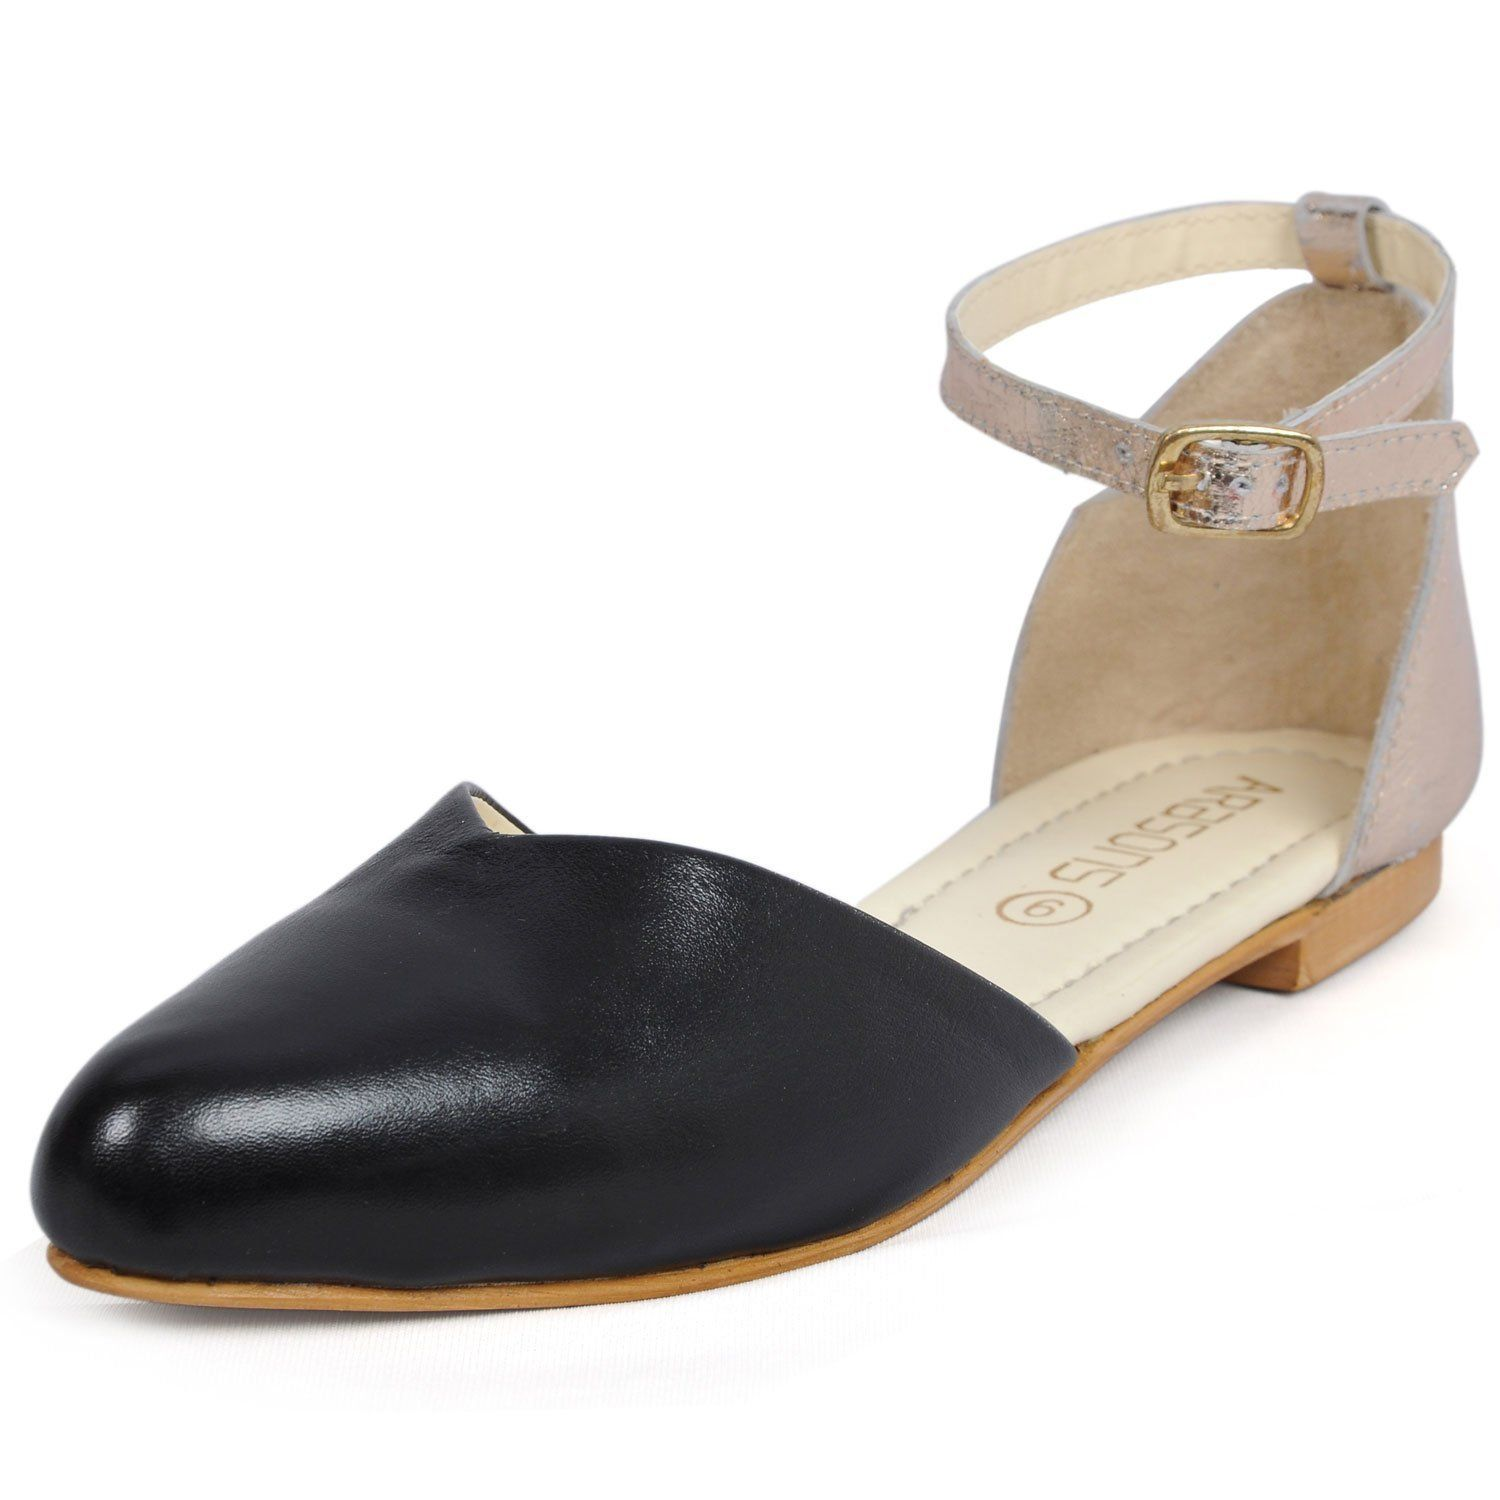 ac5bd361938 Women s Pure Leather Cleopatra Ballet Flat - Black And Beige Closed Toe  Design By ARasons